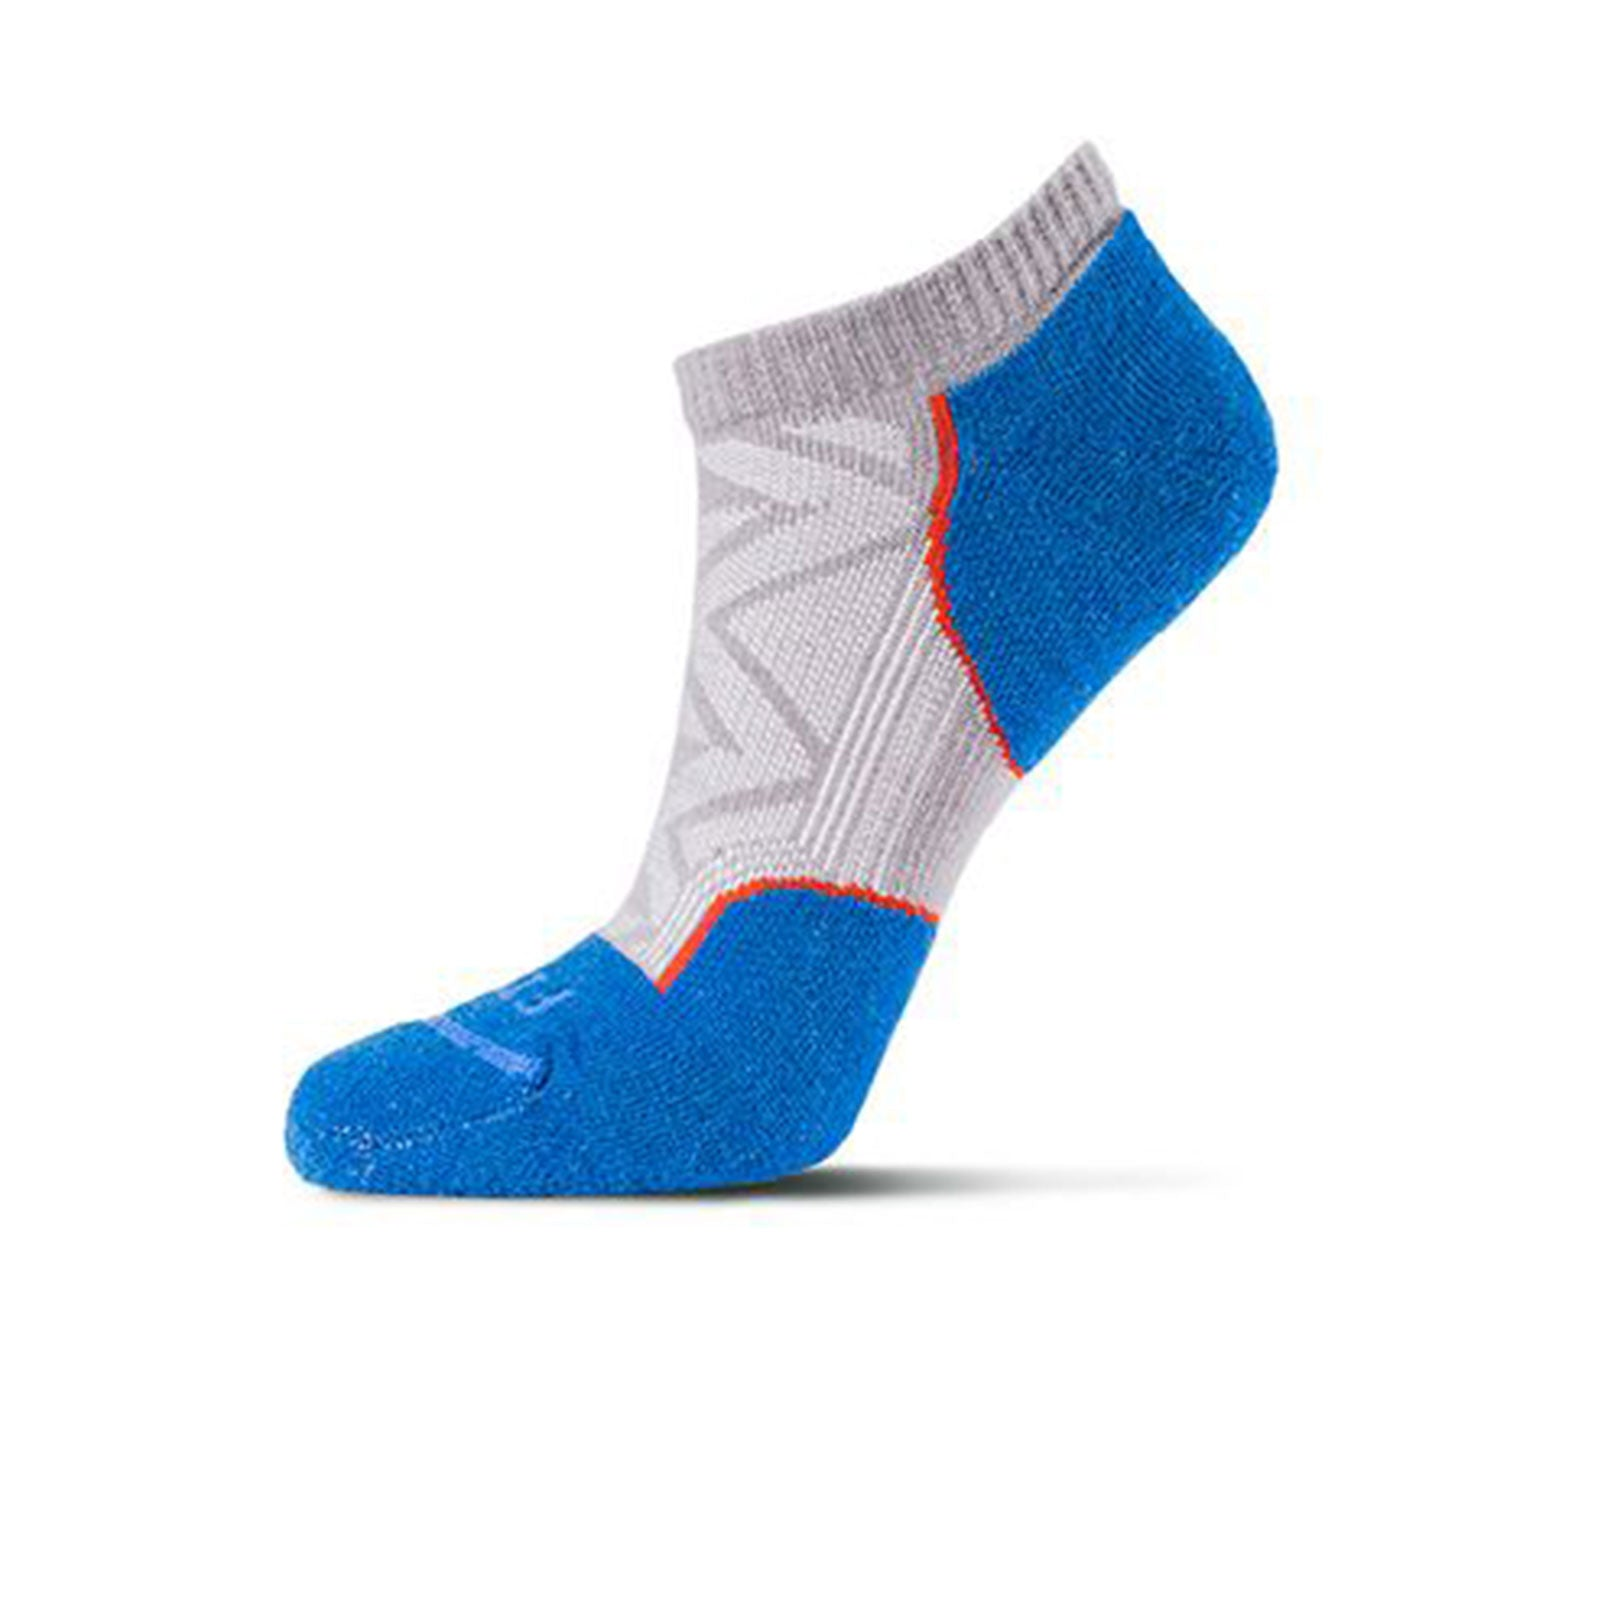 Fits Light Runner Low (Unisex) - Titanium Socks|Perf - Low Cut - The Heel Shoe Fitters